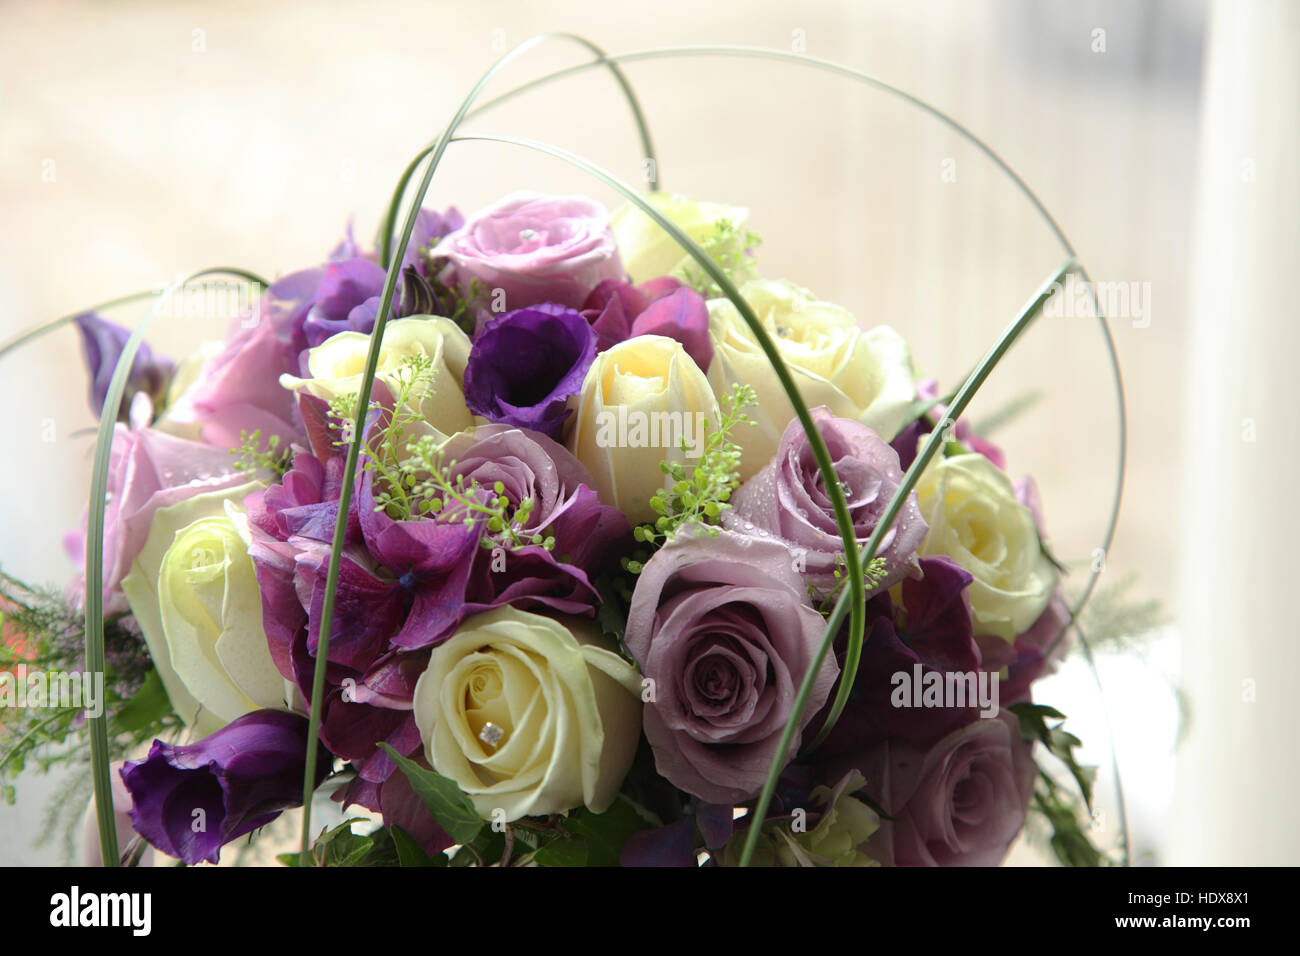 A Wedding Bouquet Made Of Roses In Dusky Pink Magenta And Cream